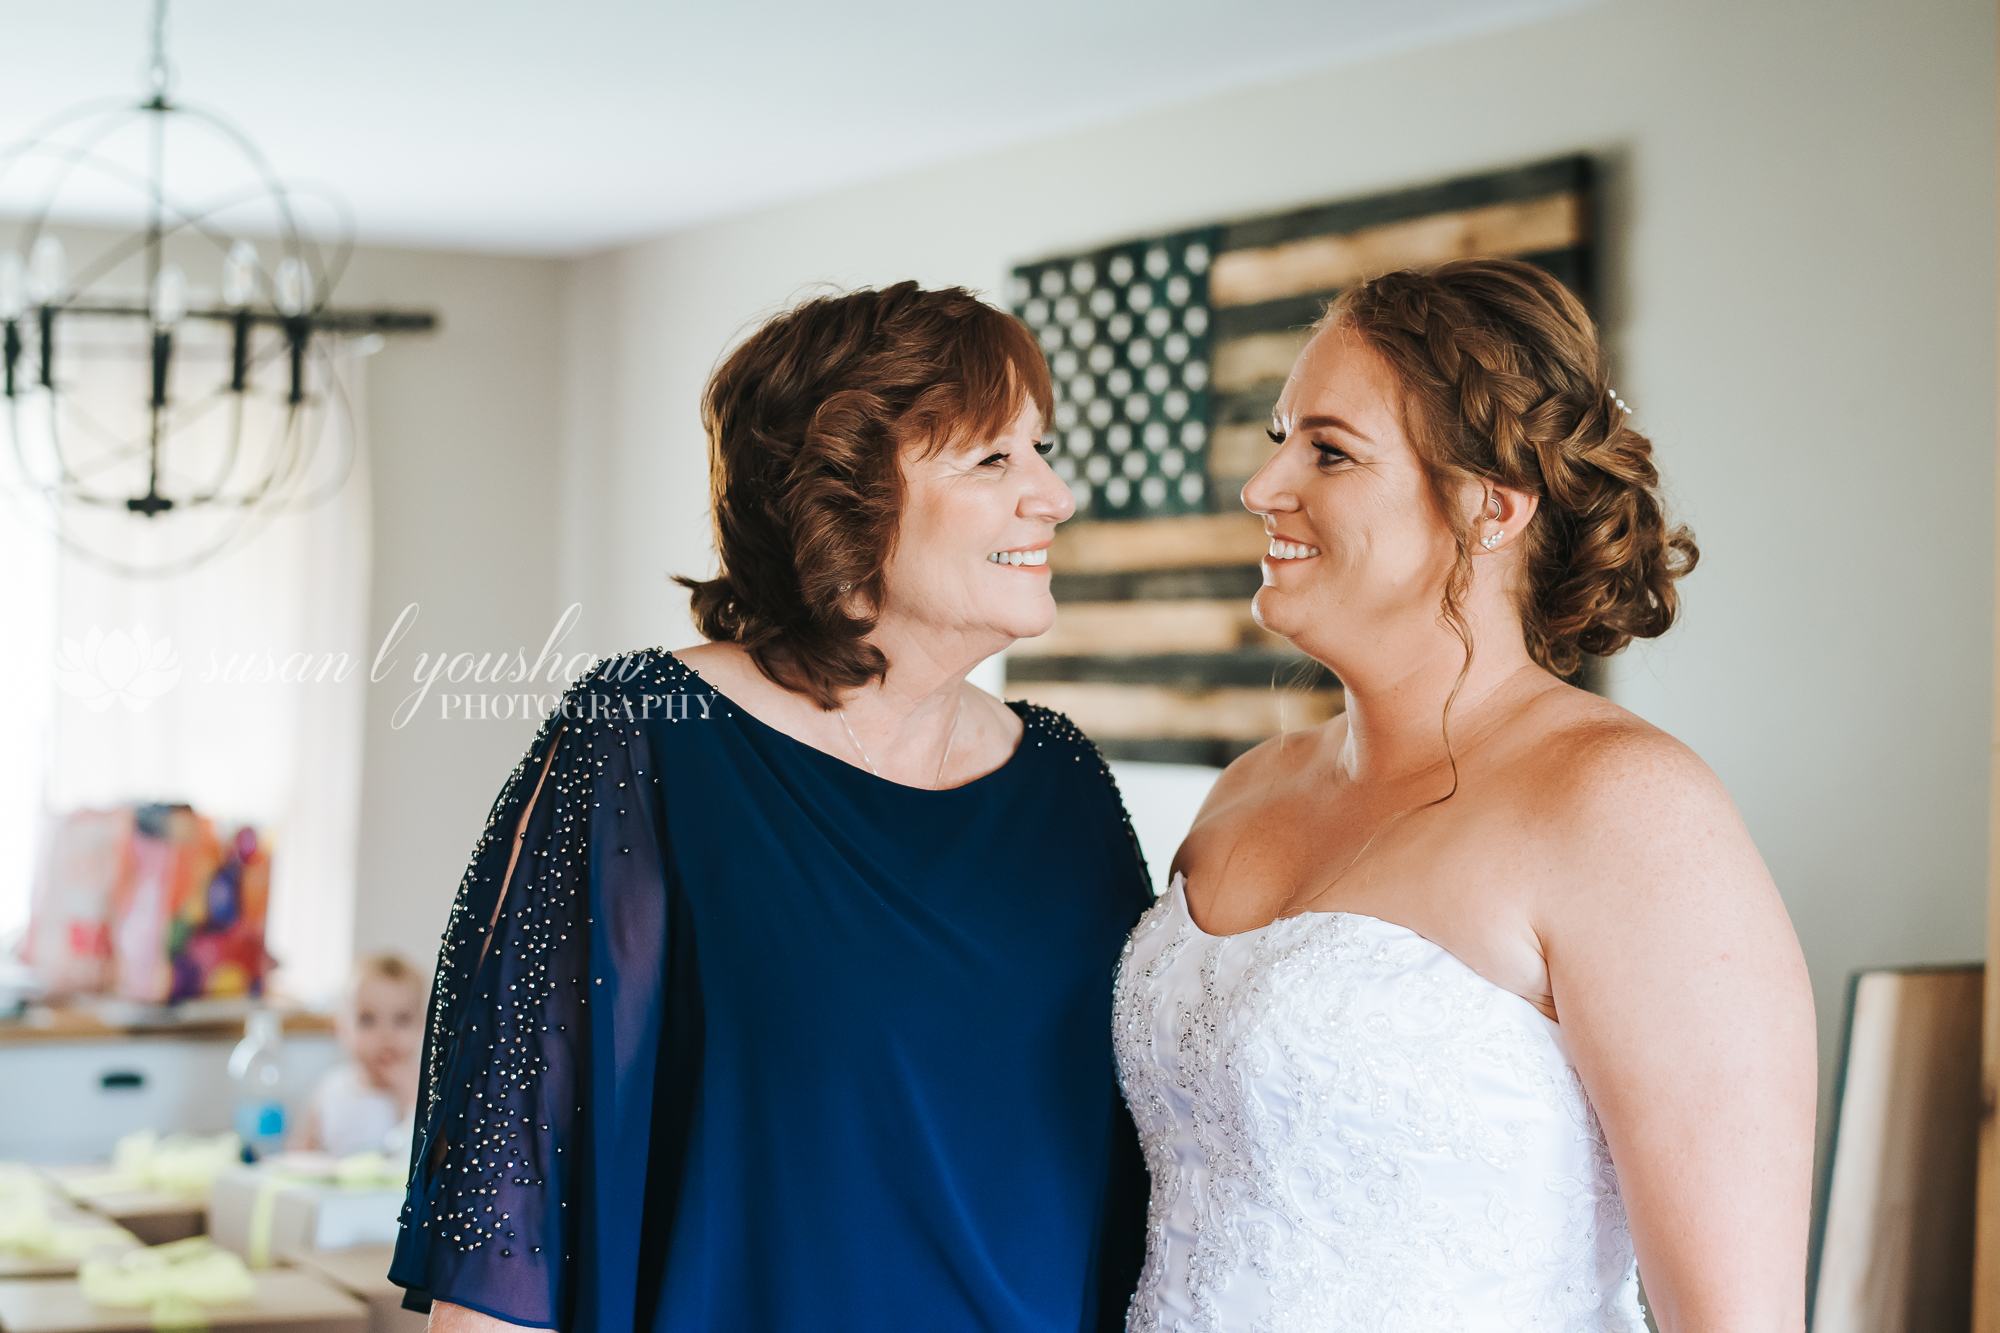 Erin and Jason Wedding Photos 07-06-2019 SLY Photography-28.jpg